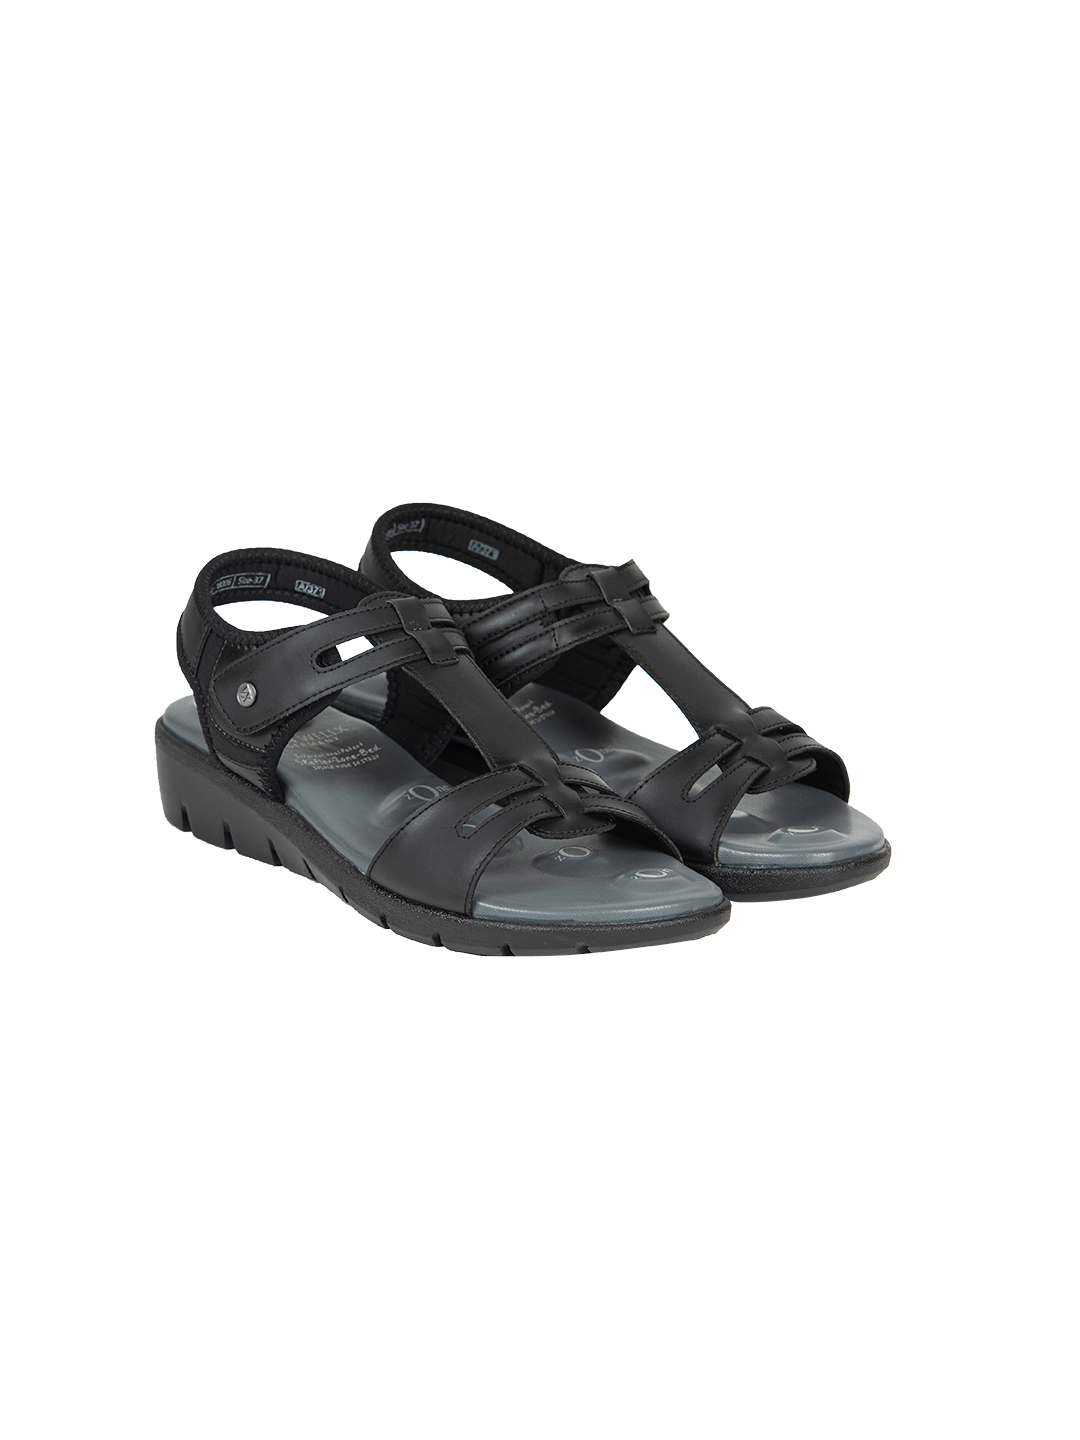 Buy Von Wellx Germany Comfort Nova Black Sandals Online in Sri Lanka